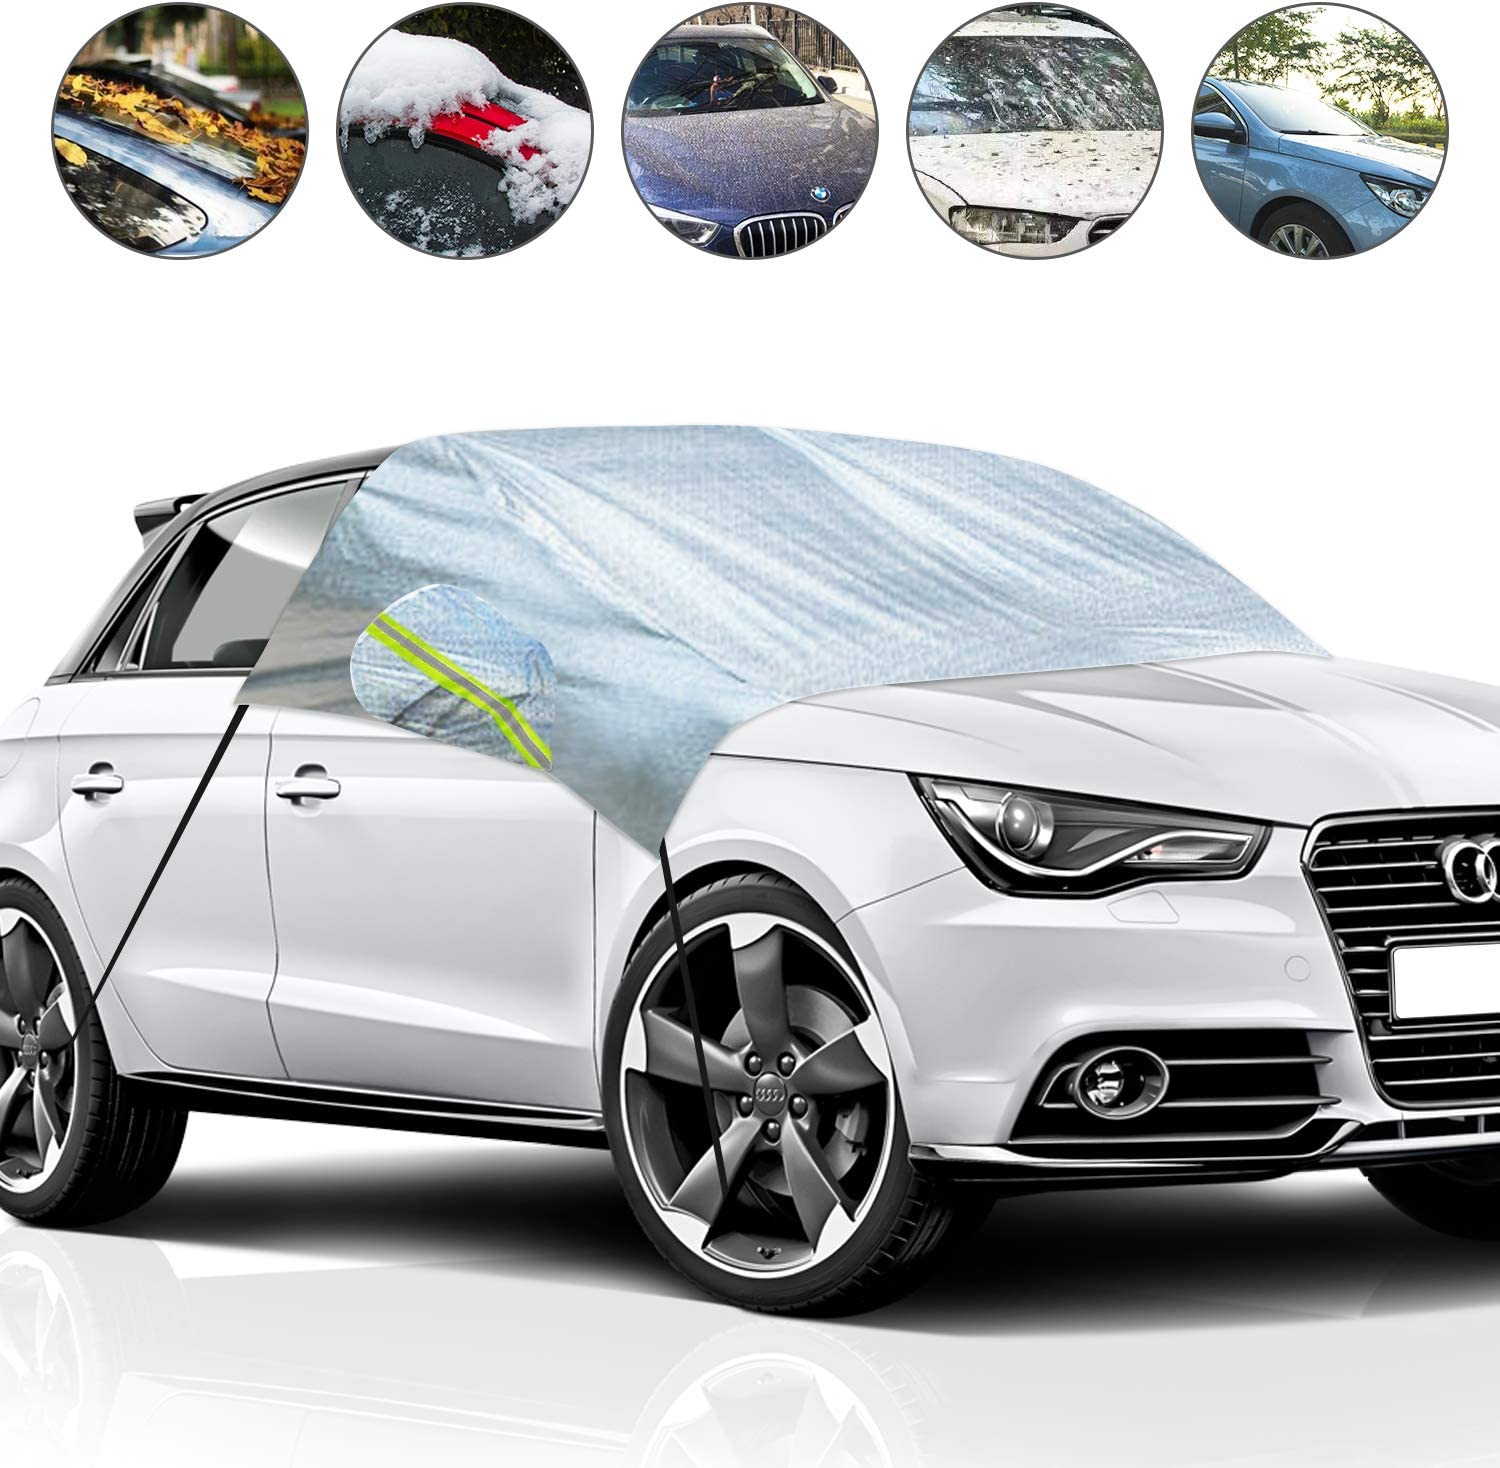 Car Windshield Cover for Ice and Snow with Mirror Cover Waterproof Protector All Weather Winter Summer Sun Shade ABLEWIPE Windshield Snow Cover for Car